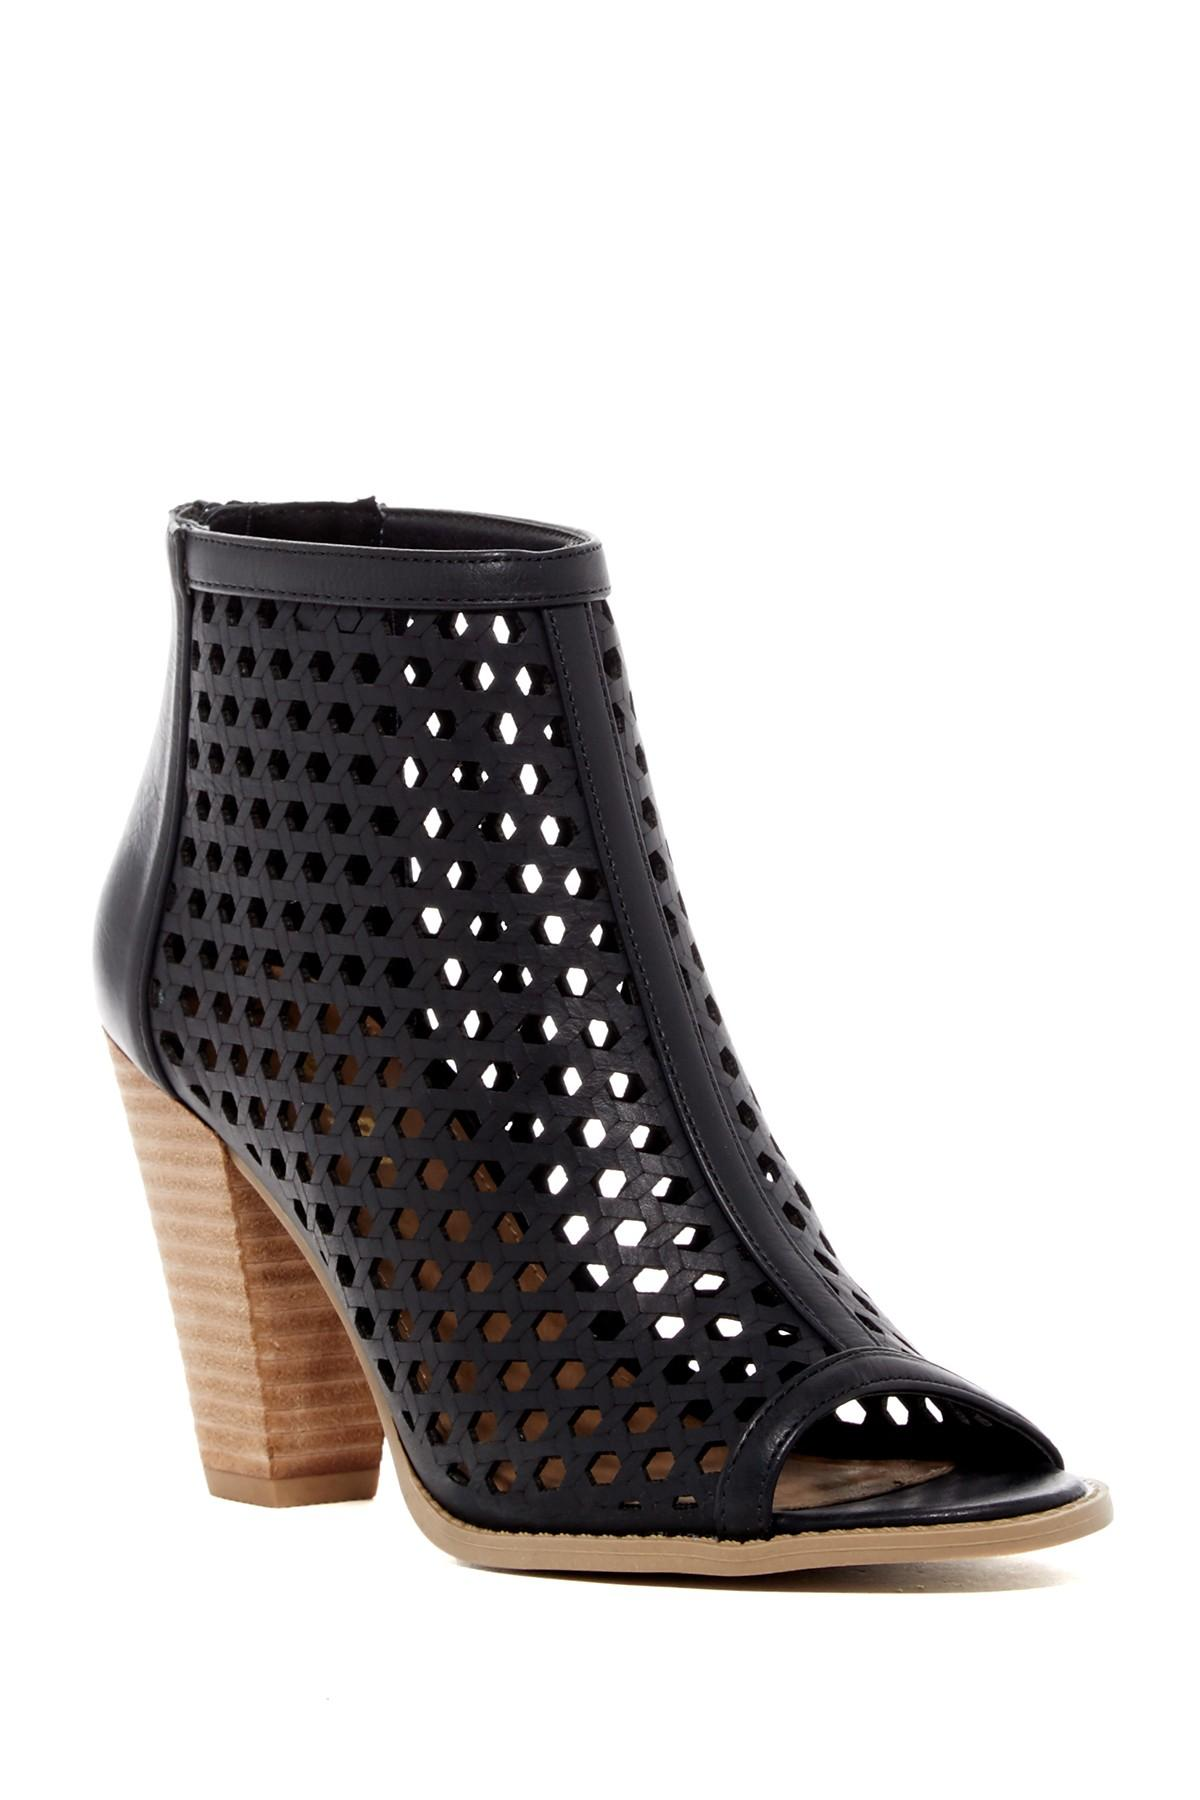 Report Ronan Perforated Peep Toe Bootie In Black Lyst